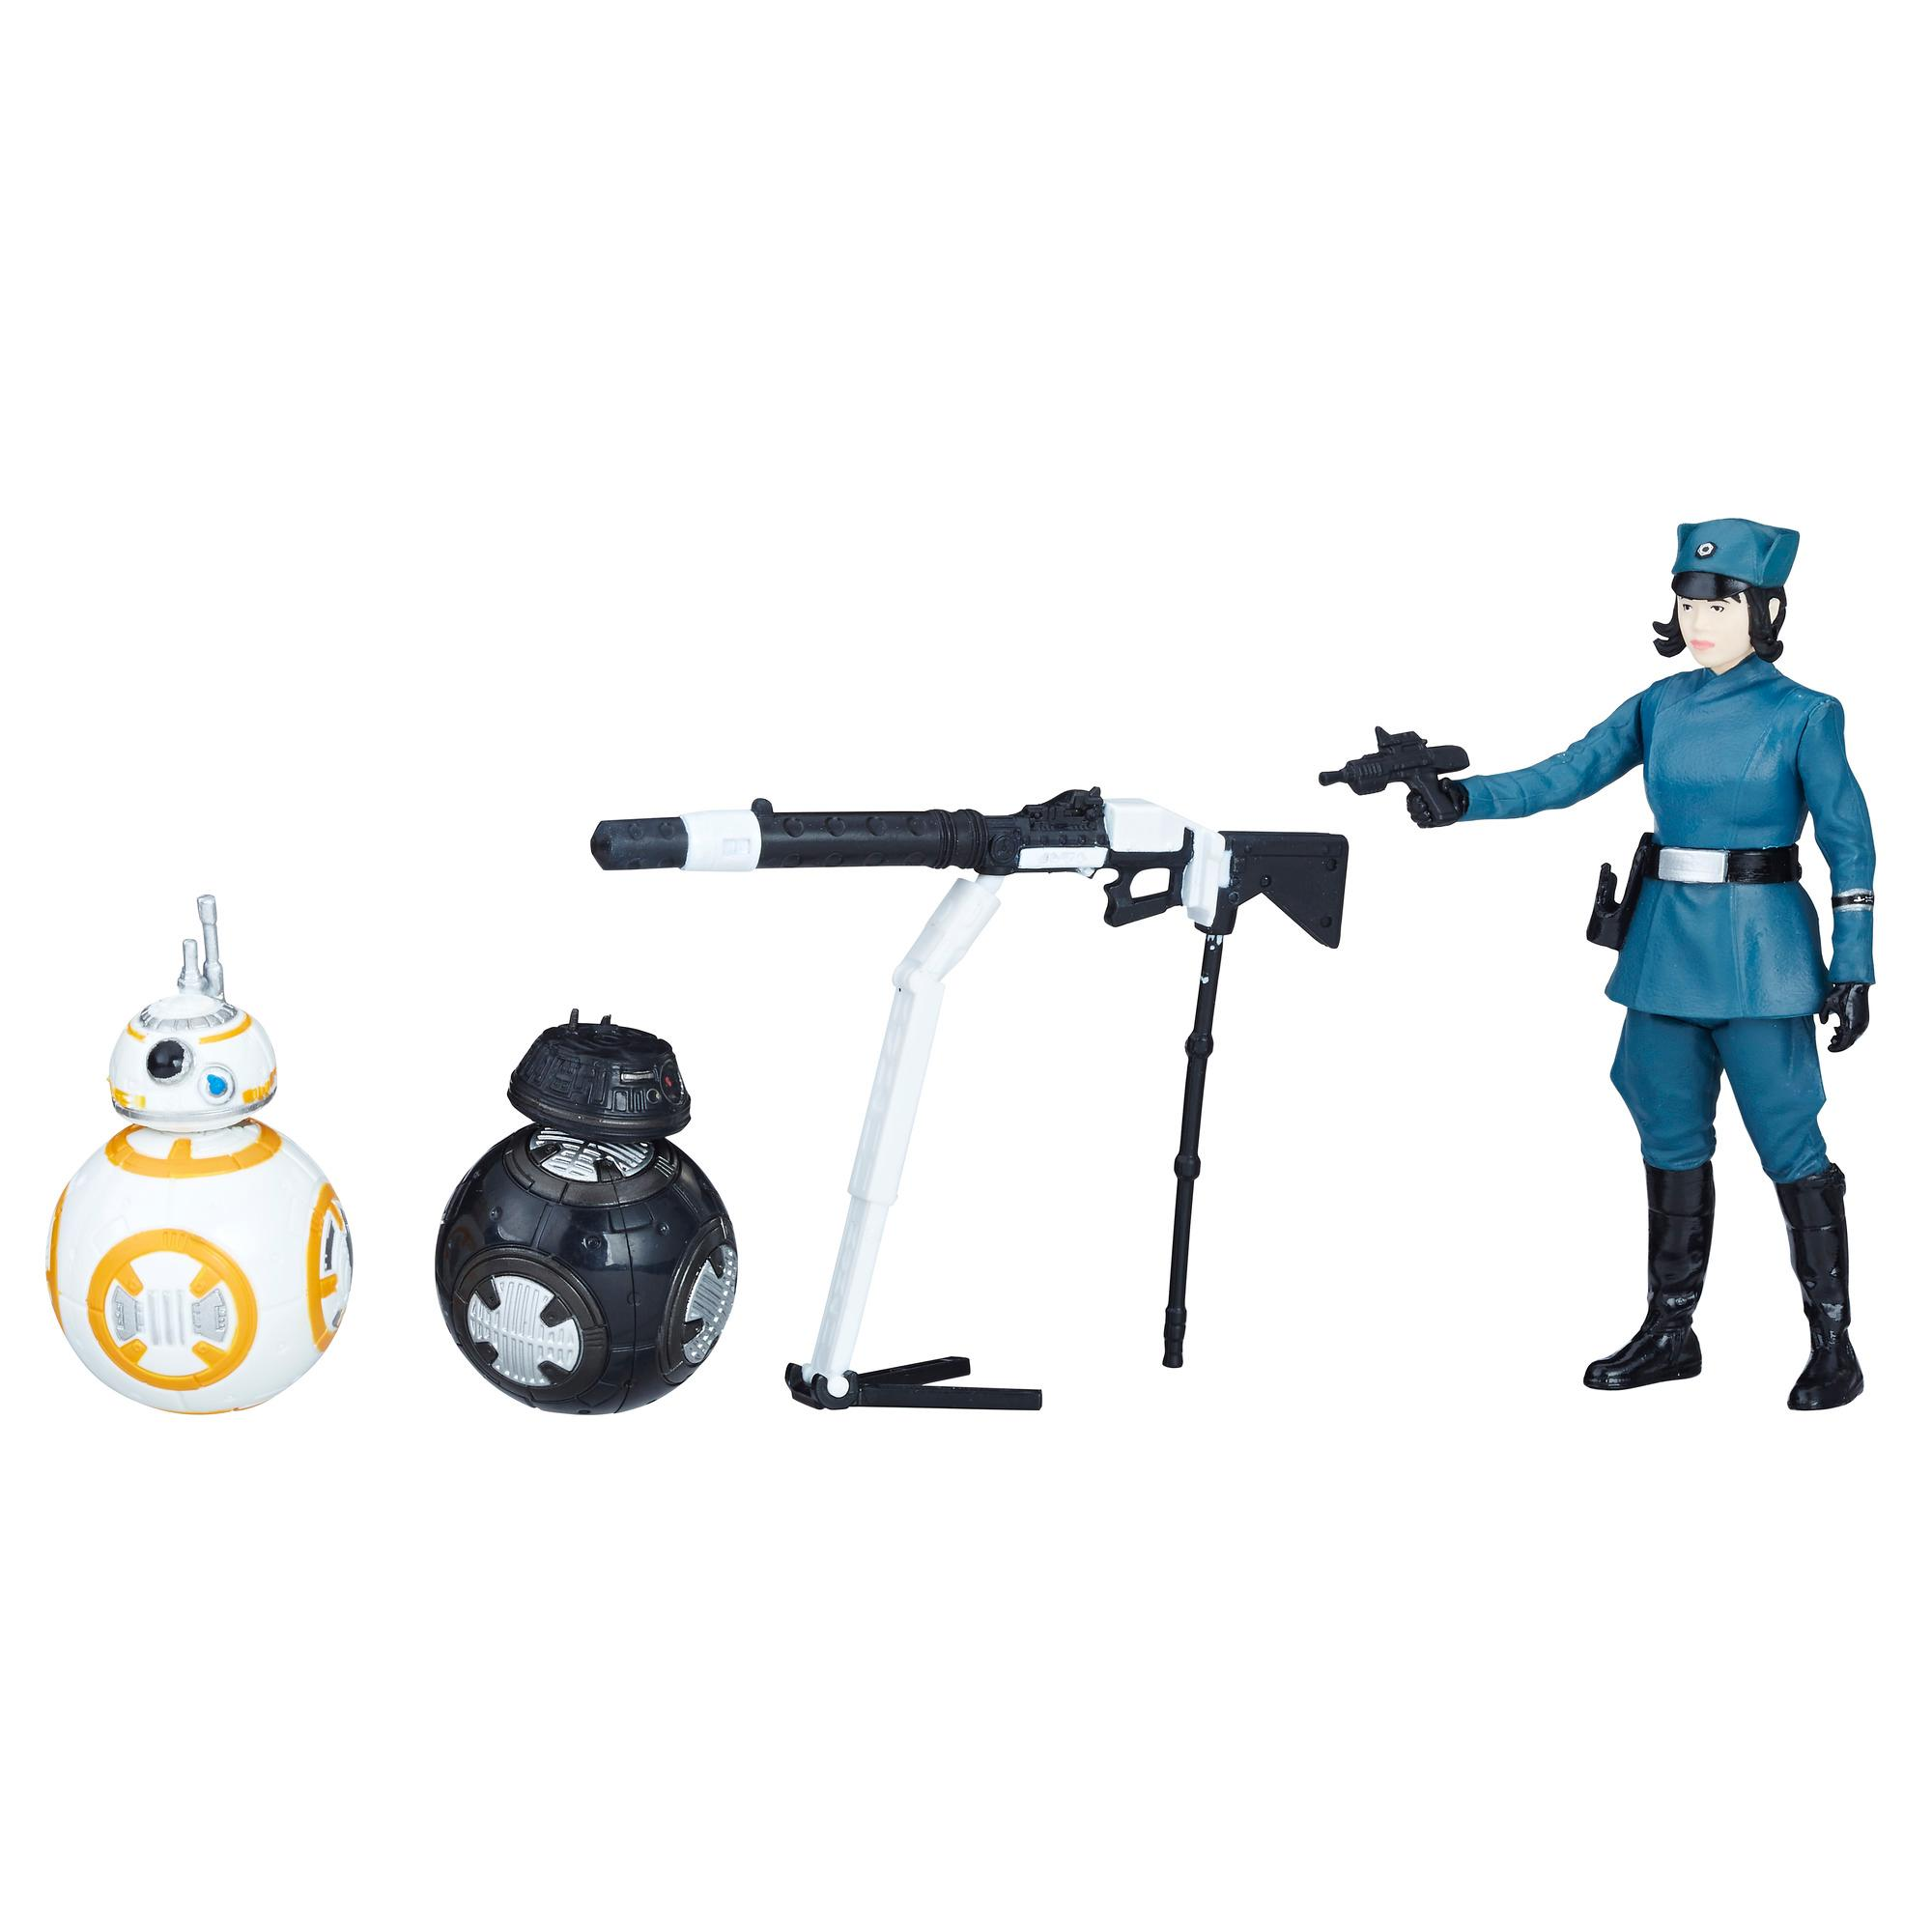 Star Wars Force Link 2.0 - Empaque de Rose (Disfraz de la Primera Orden), BB-8 y BB-9E